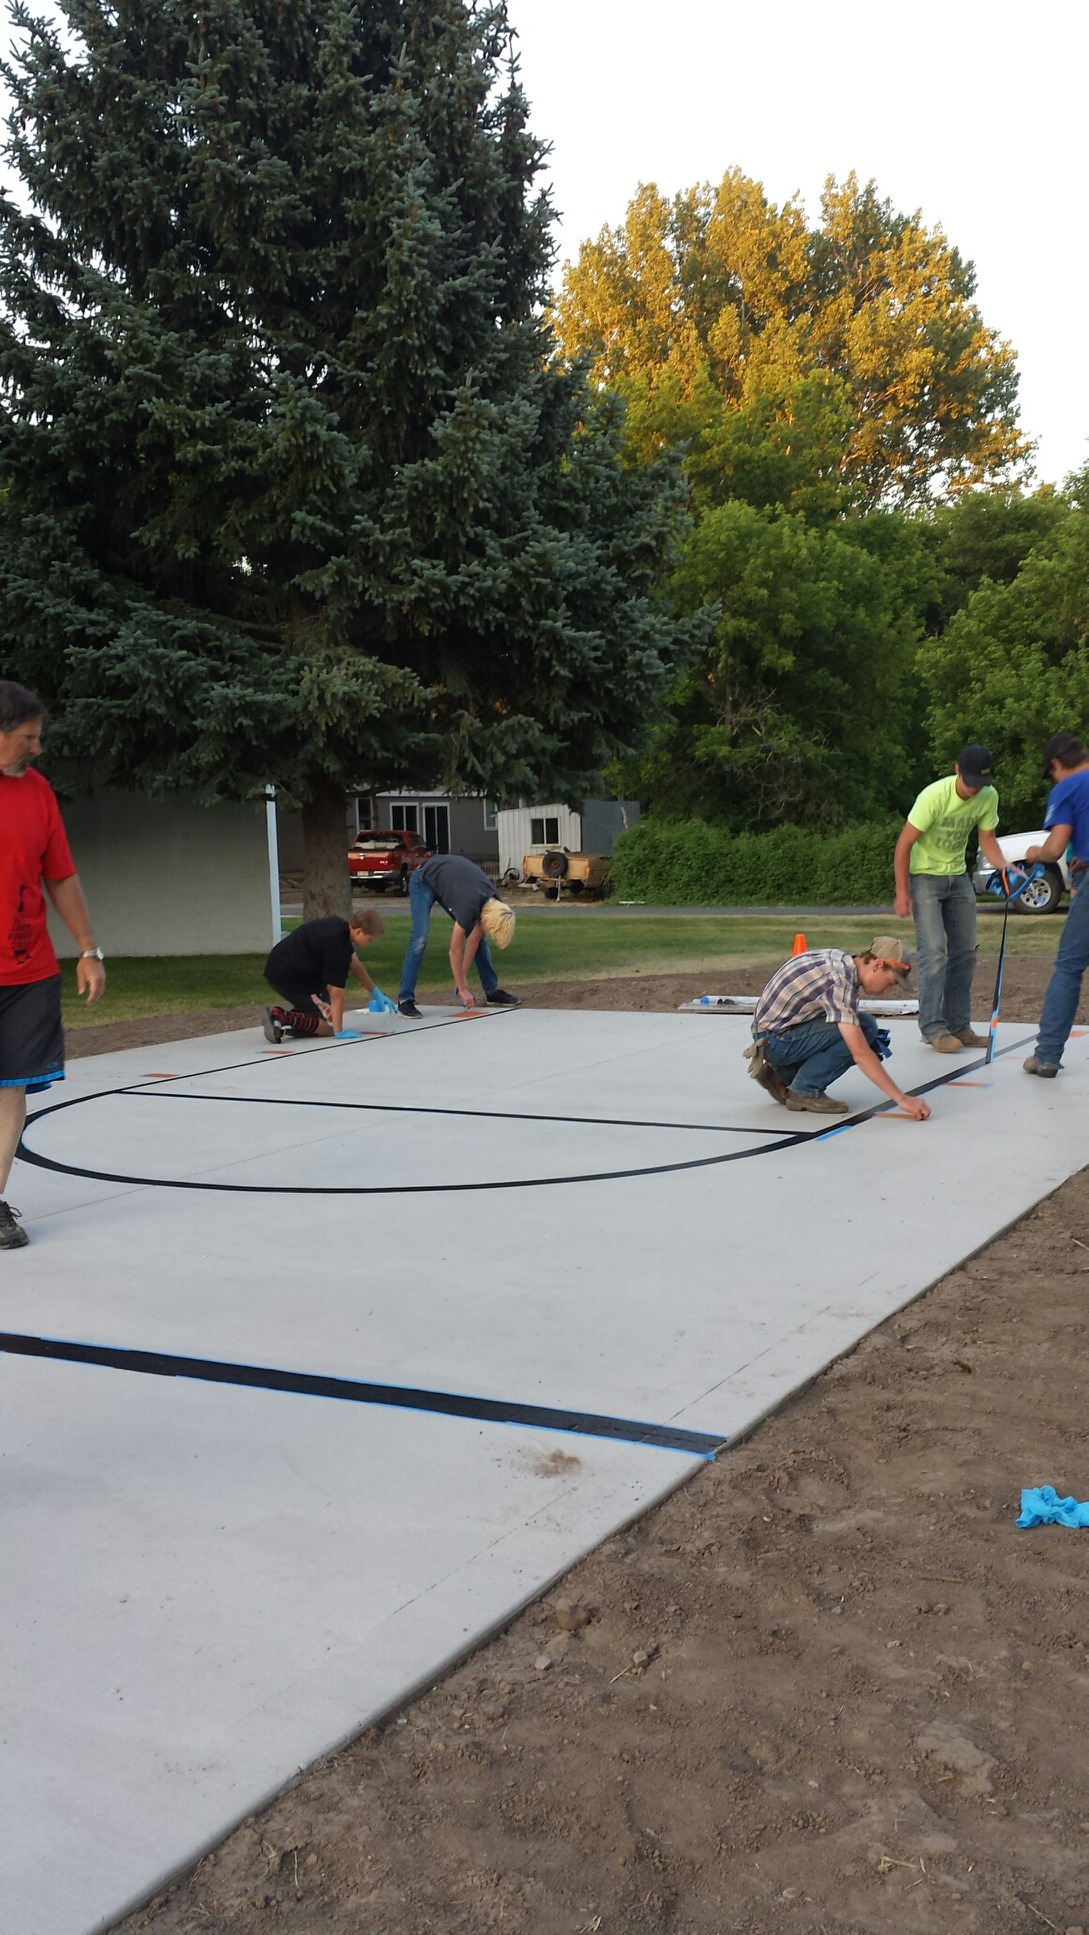 The Albion Scouts helped with nearly every step of the process and here they are adding the lines to the new court.